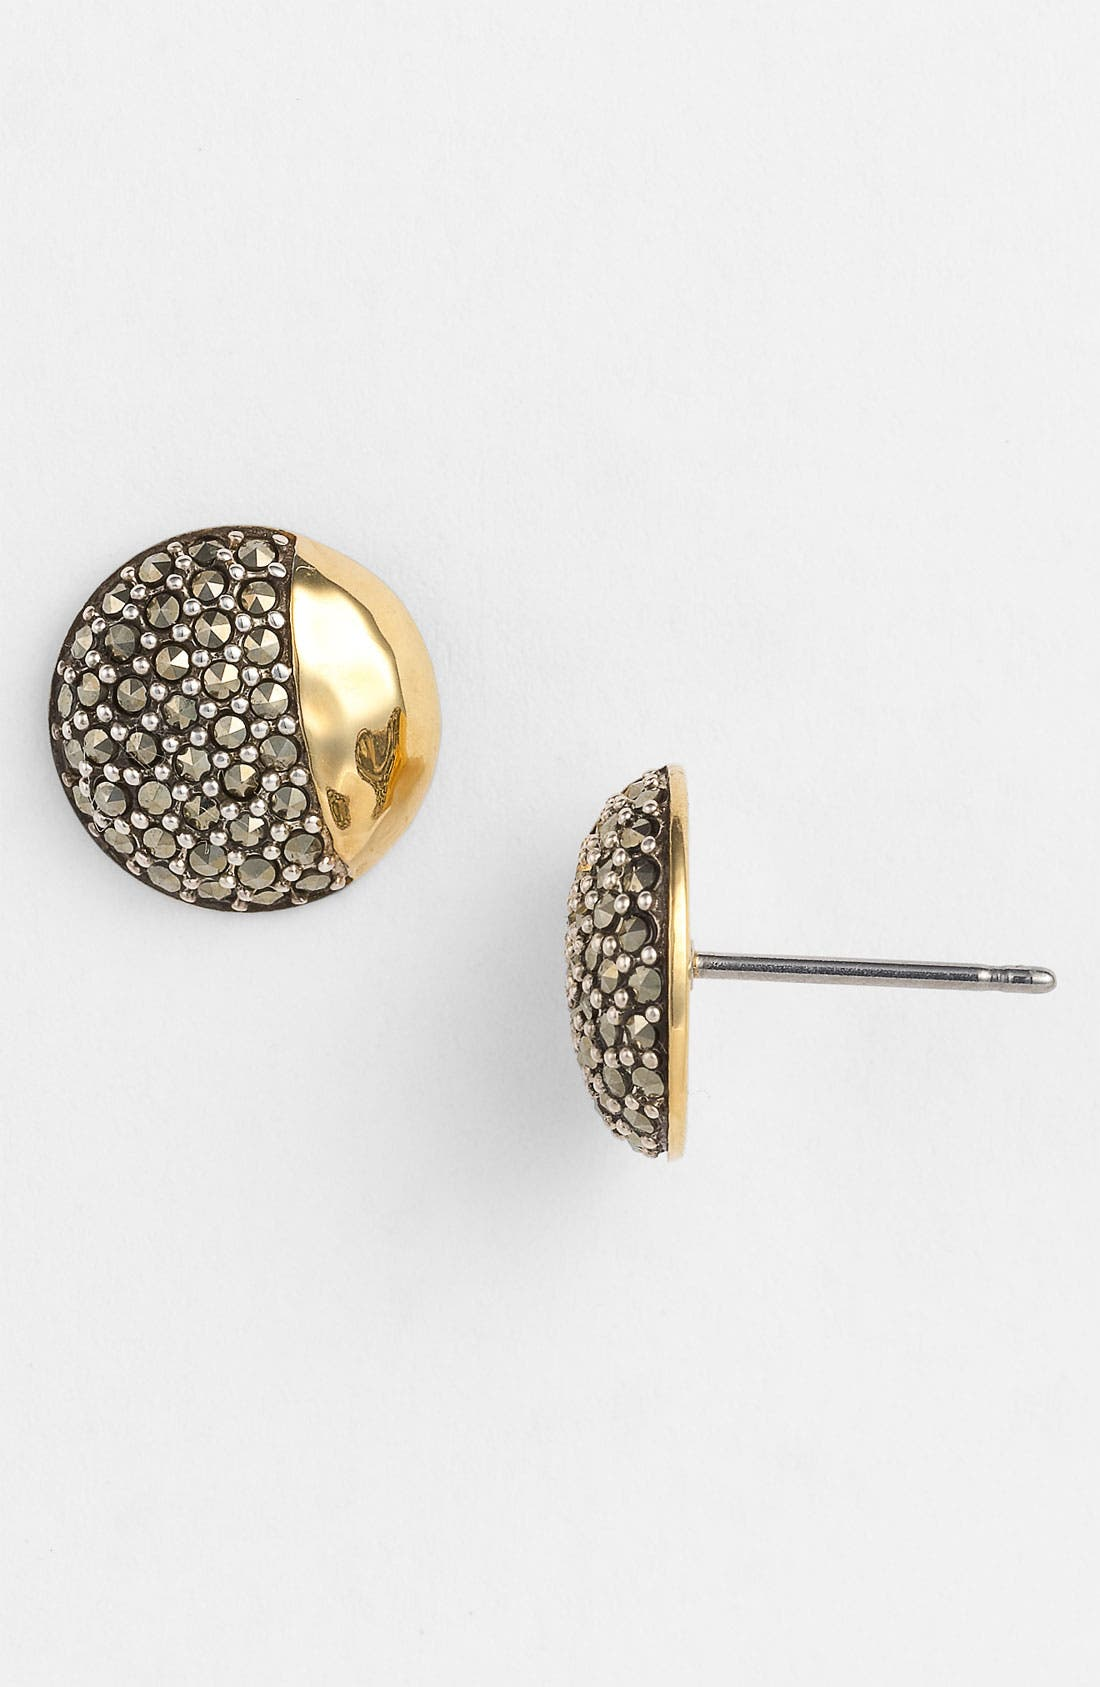 Main Image - Judith Jack 'Gold Sea' Button Stud Earrings